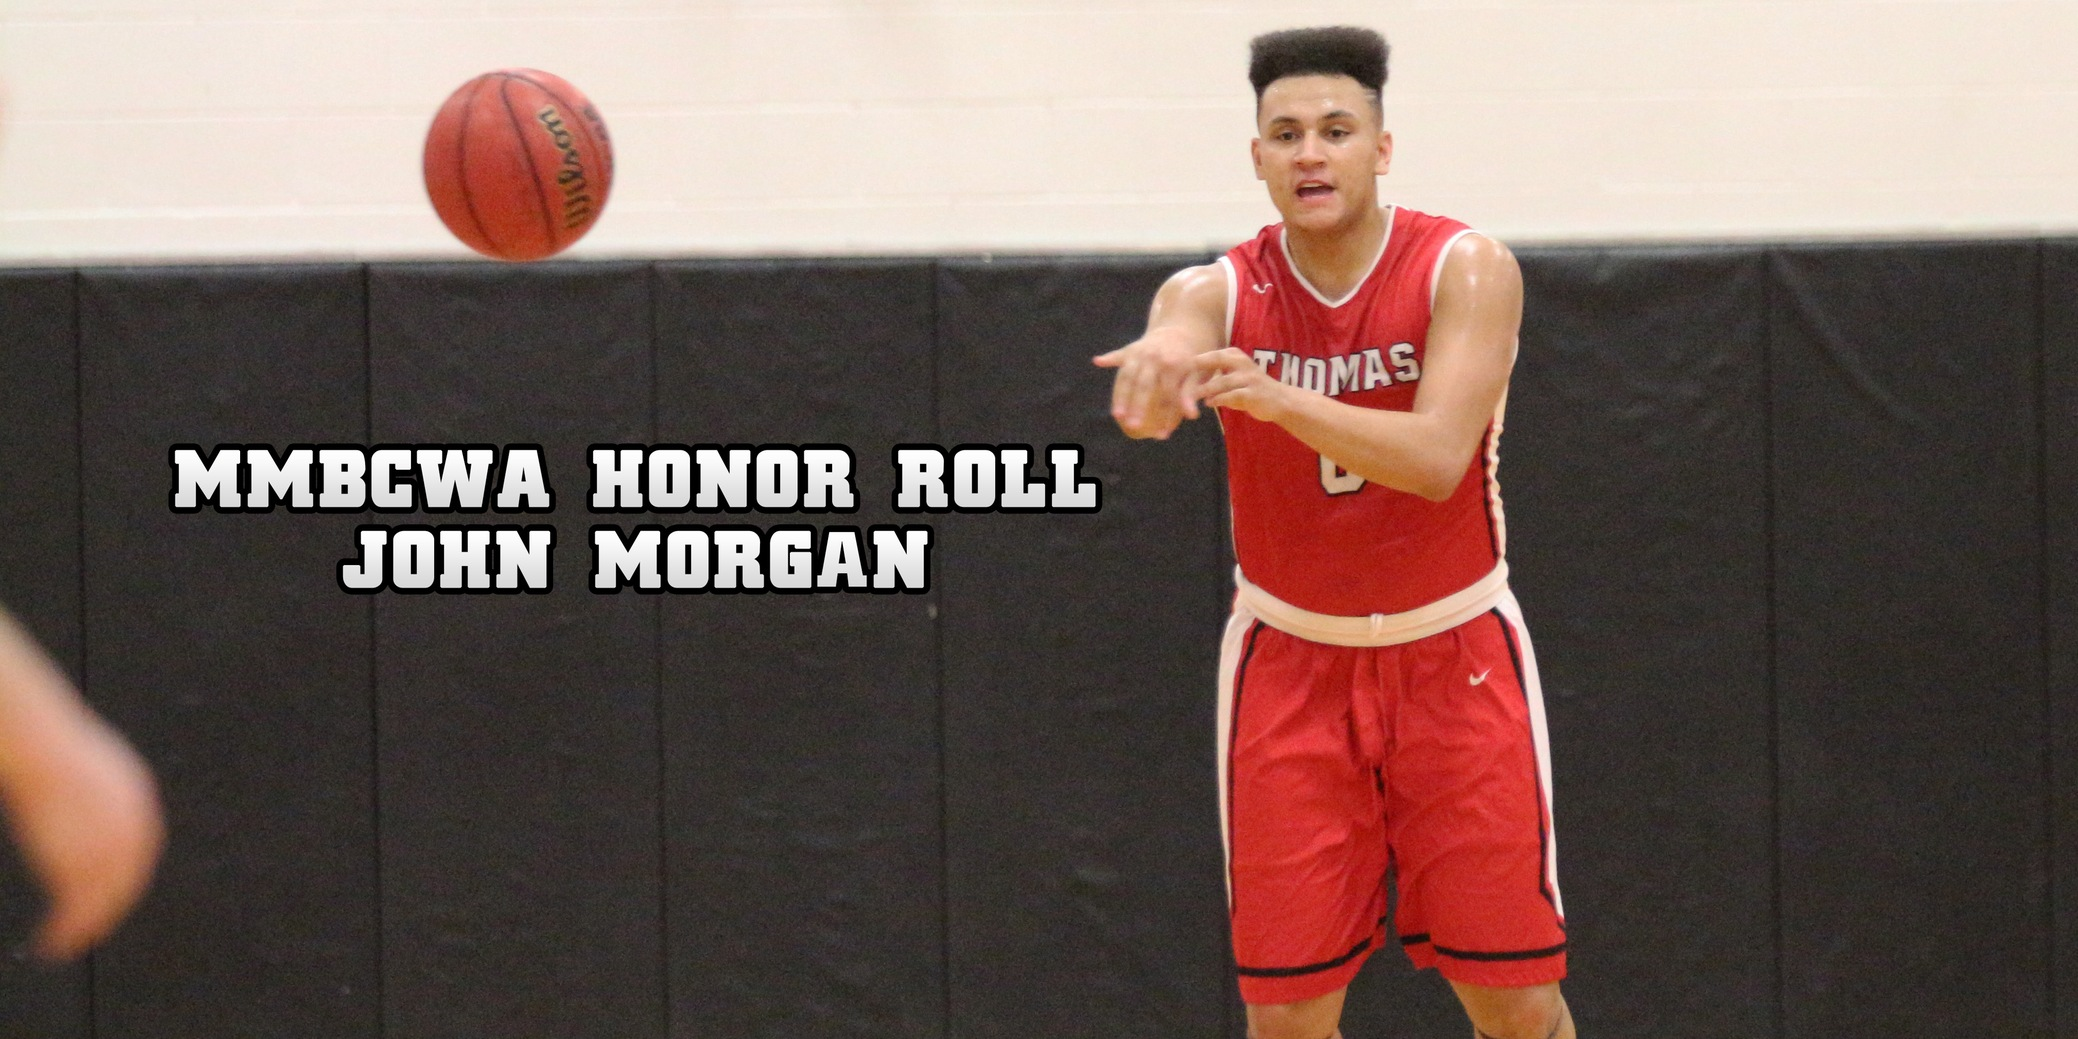 Morgan Named to Maine Men's Basketball Coaches and Writers Association Honor Roll